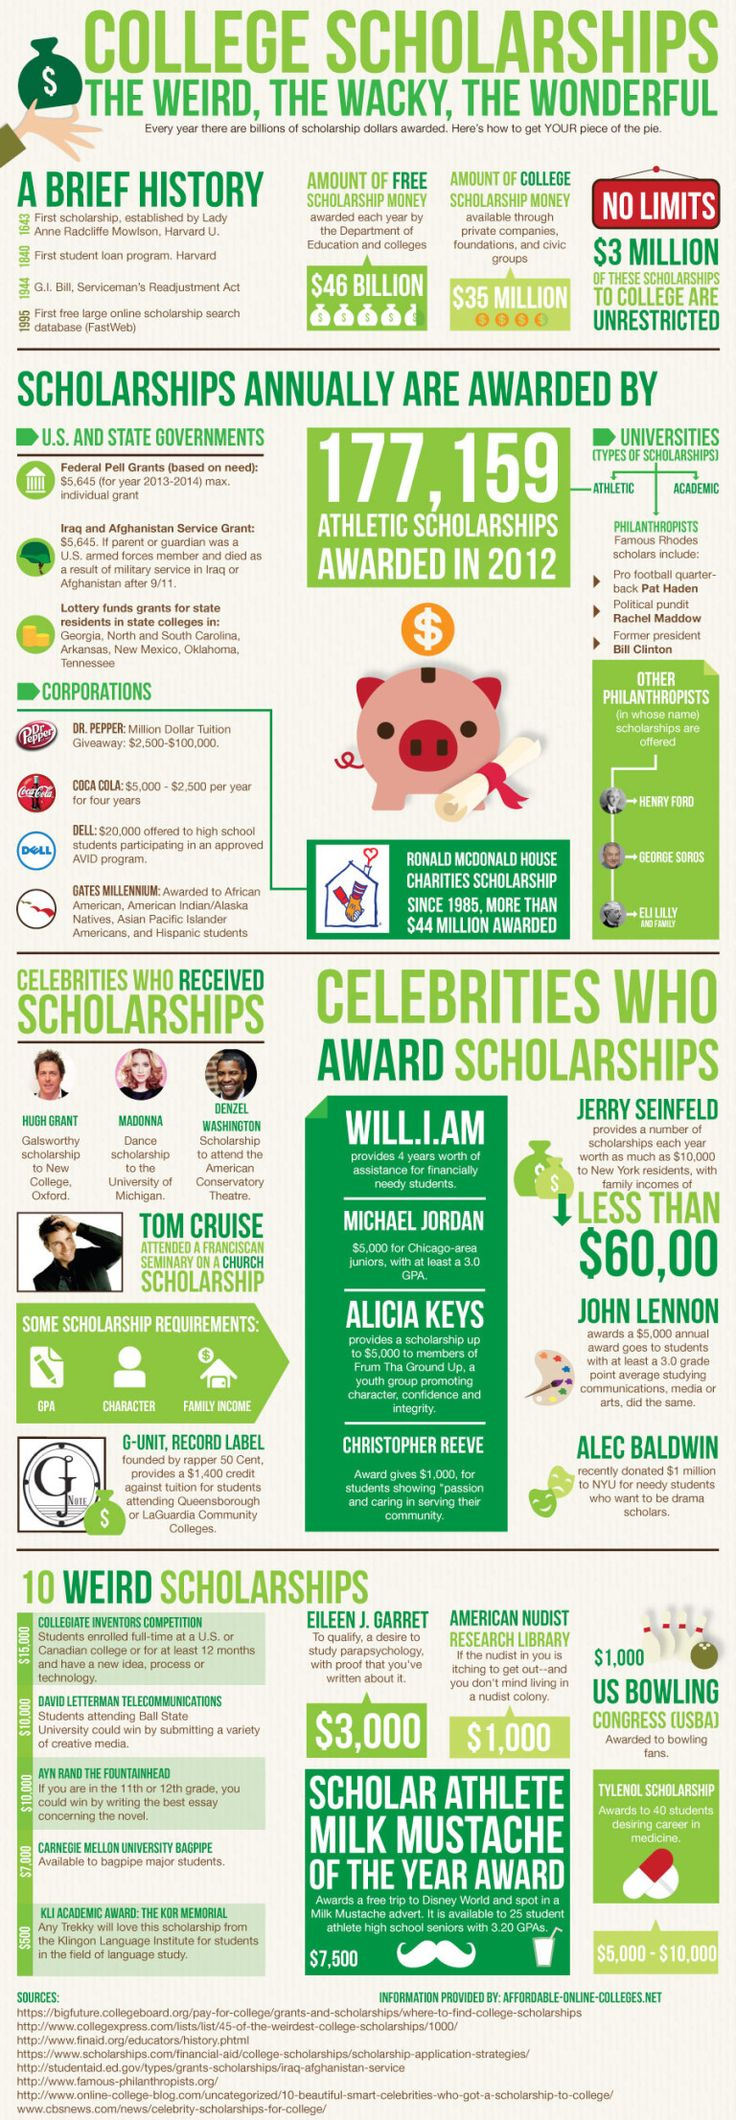 College Scholarships - Money For Nothing